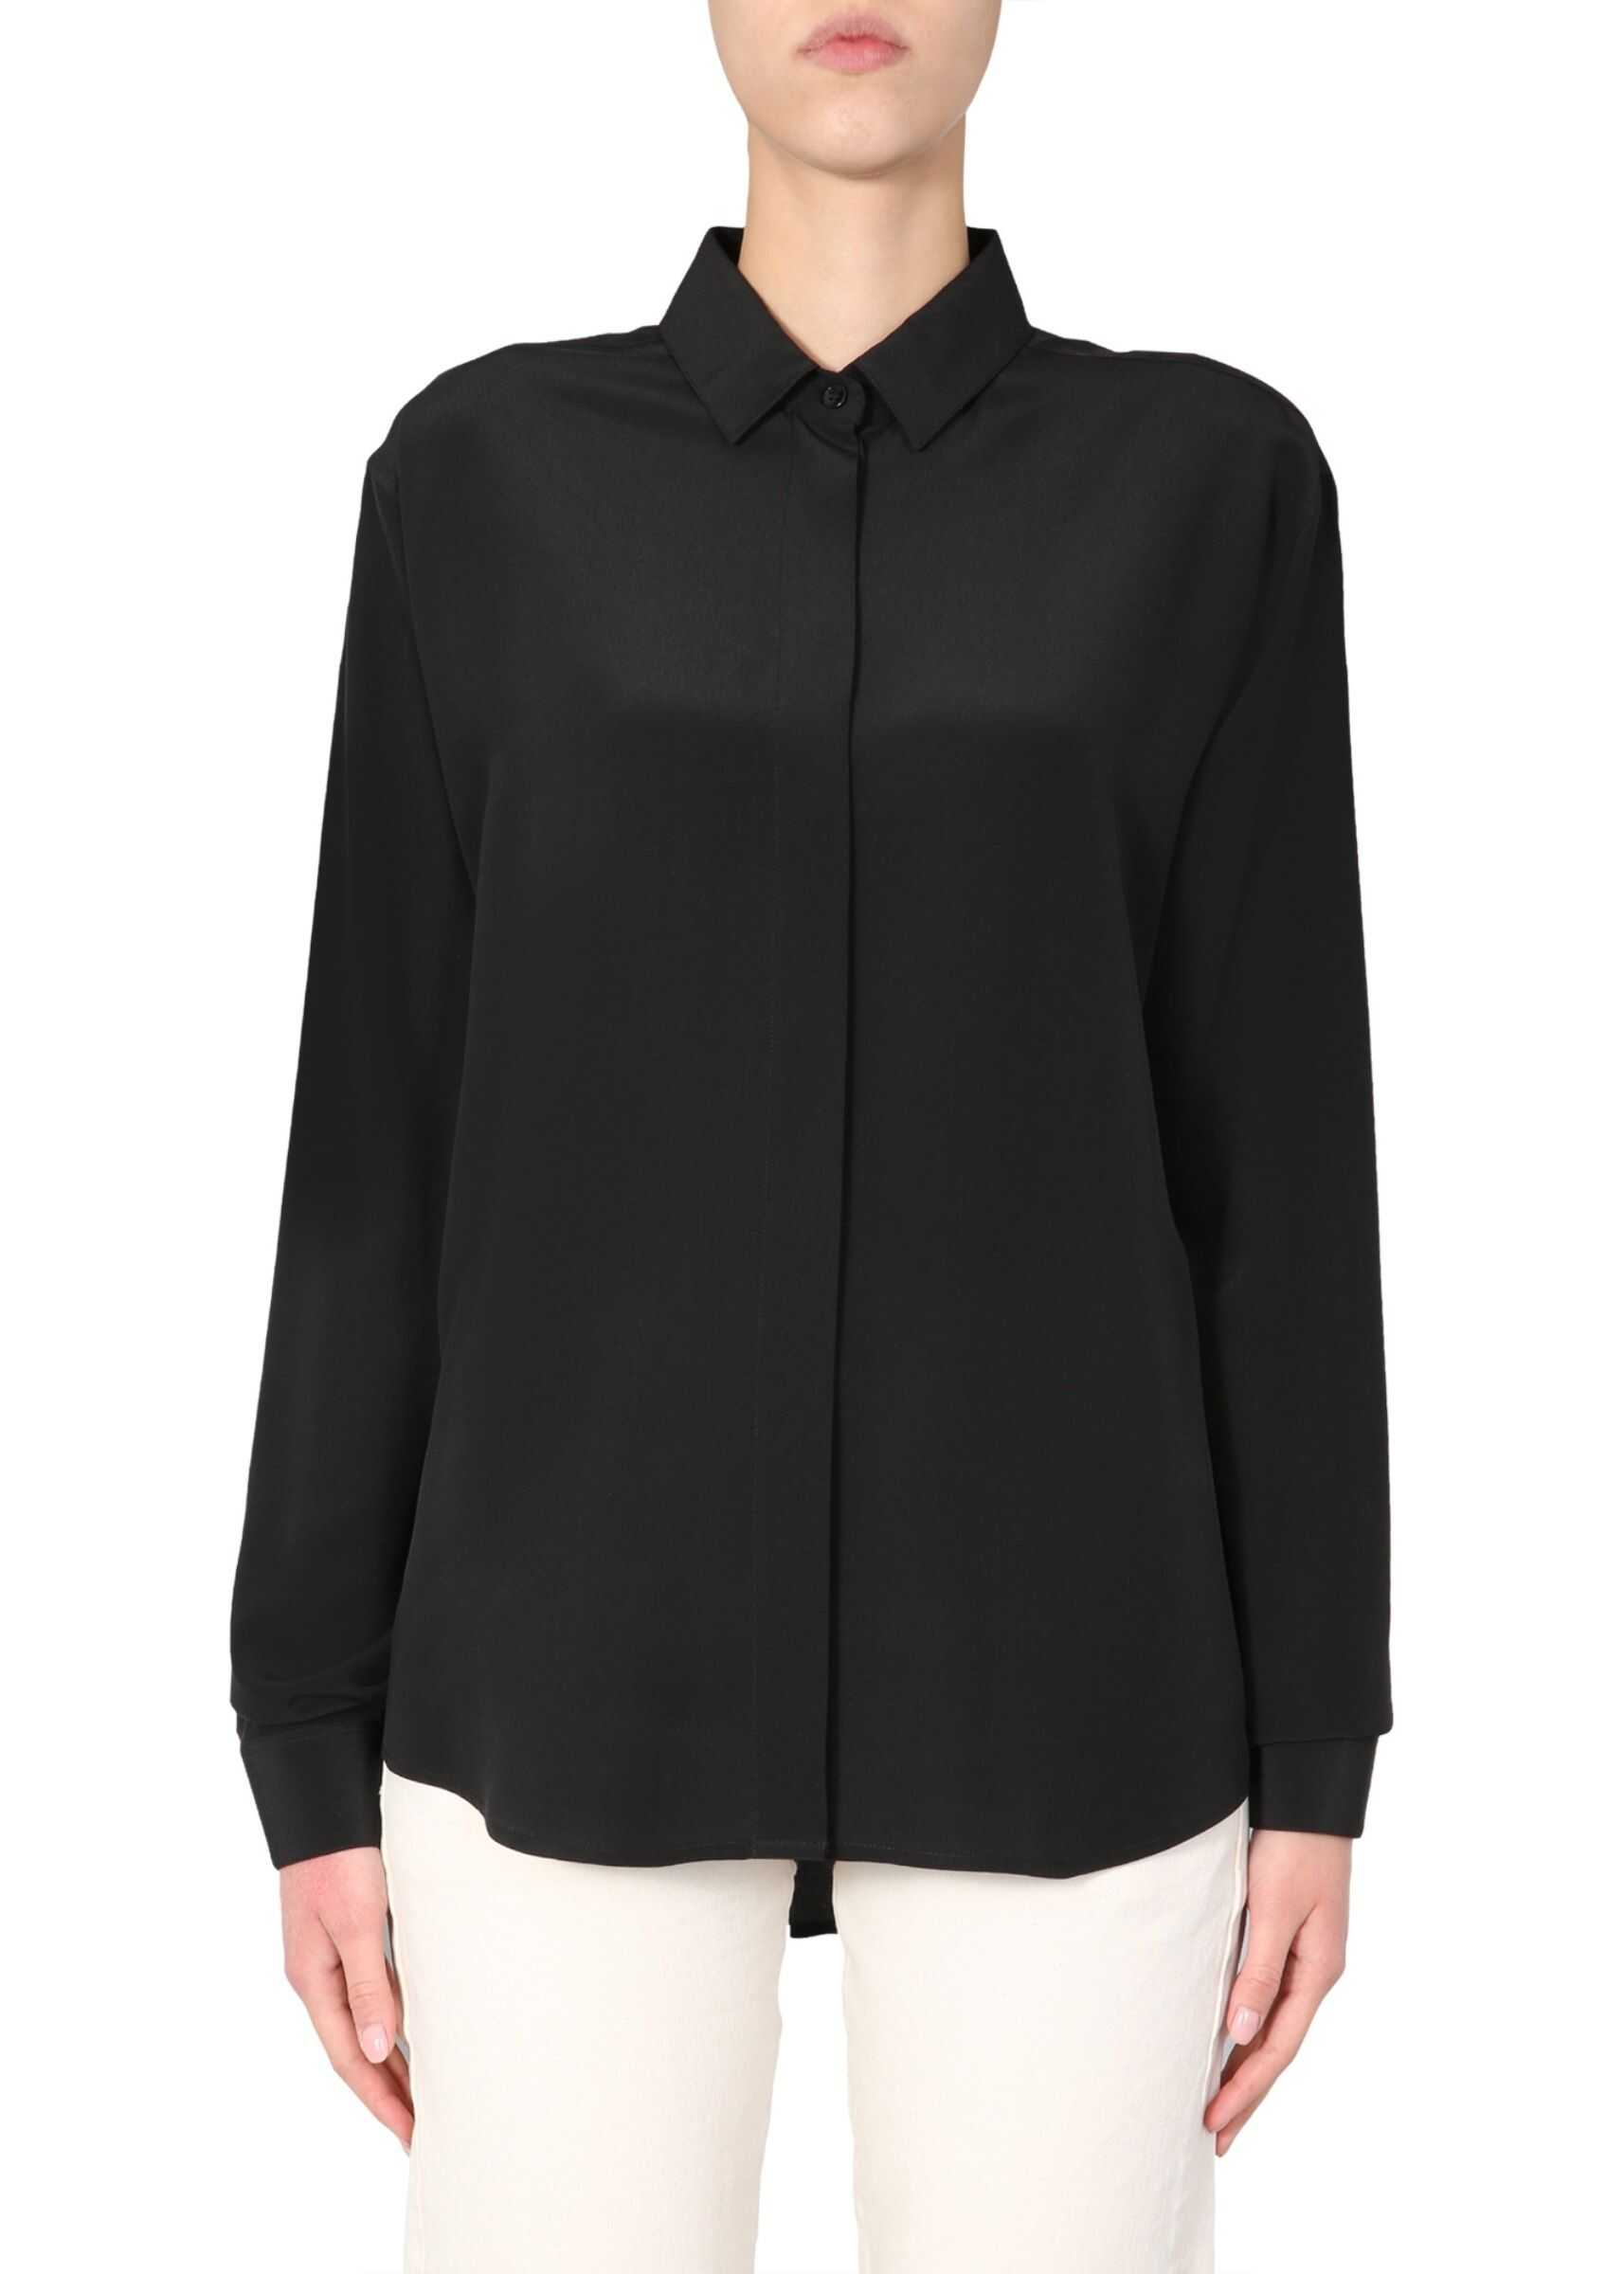 Saint Laurent Regular Fit Shirt BLACK